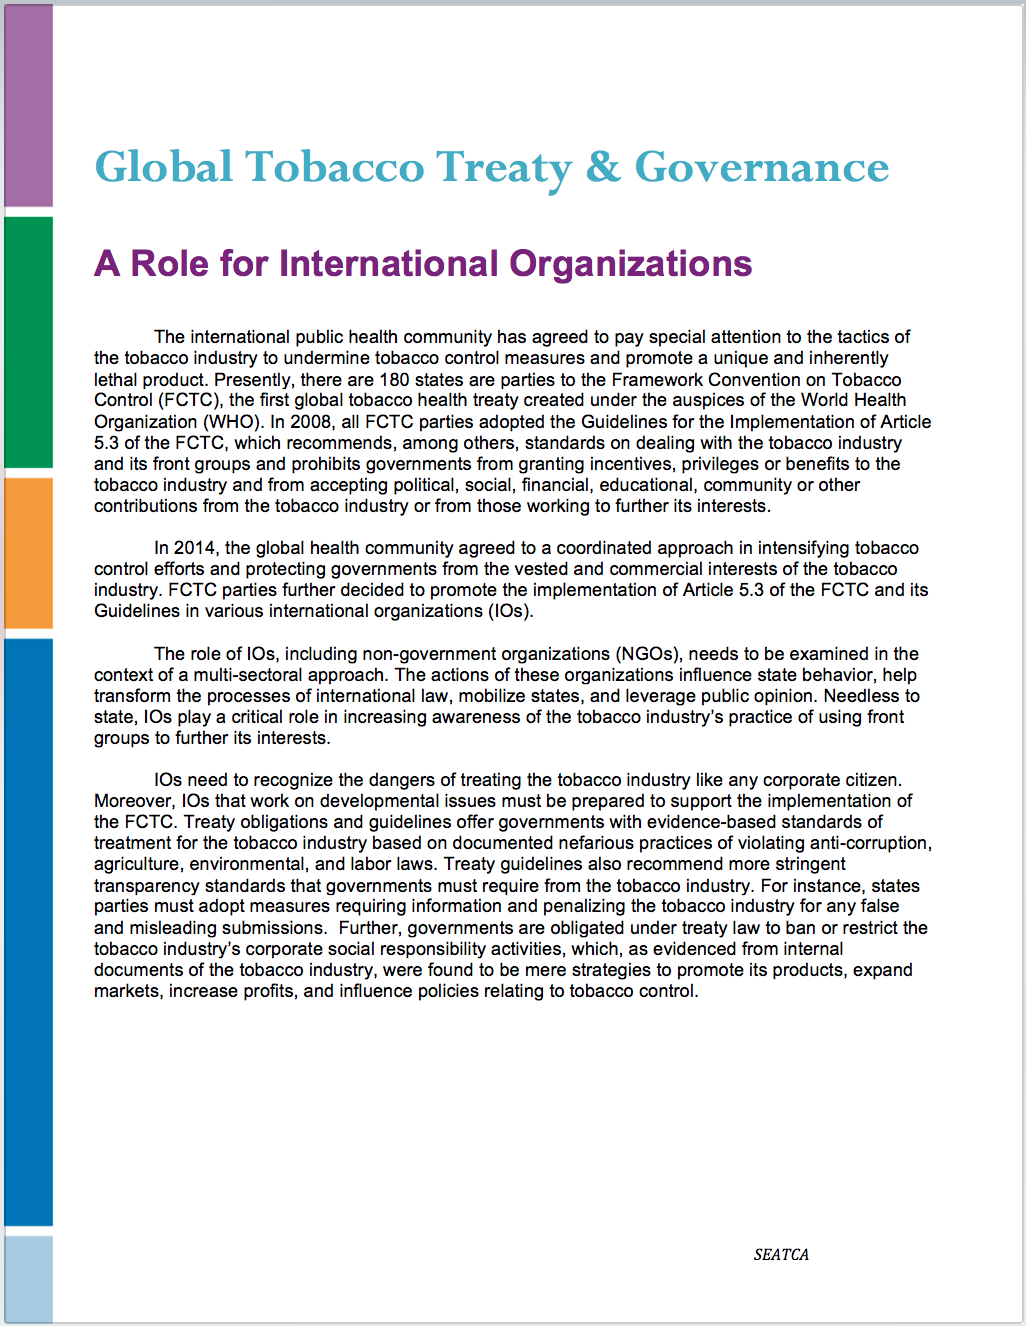 global-tob-treaty-and-governance-cover